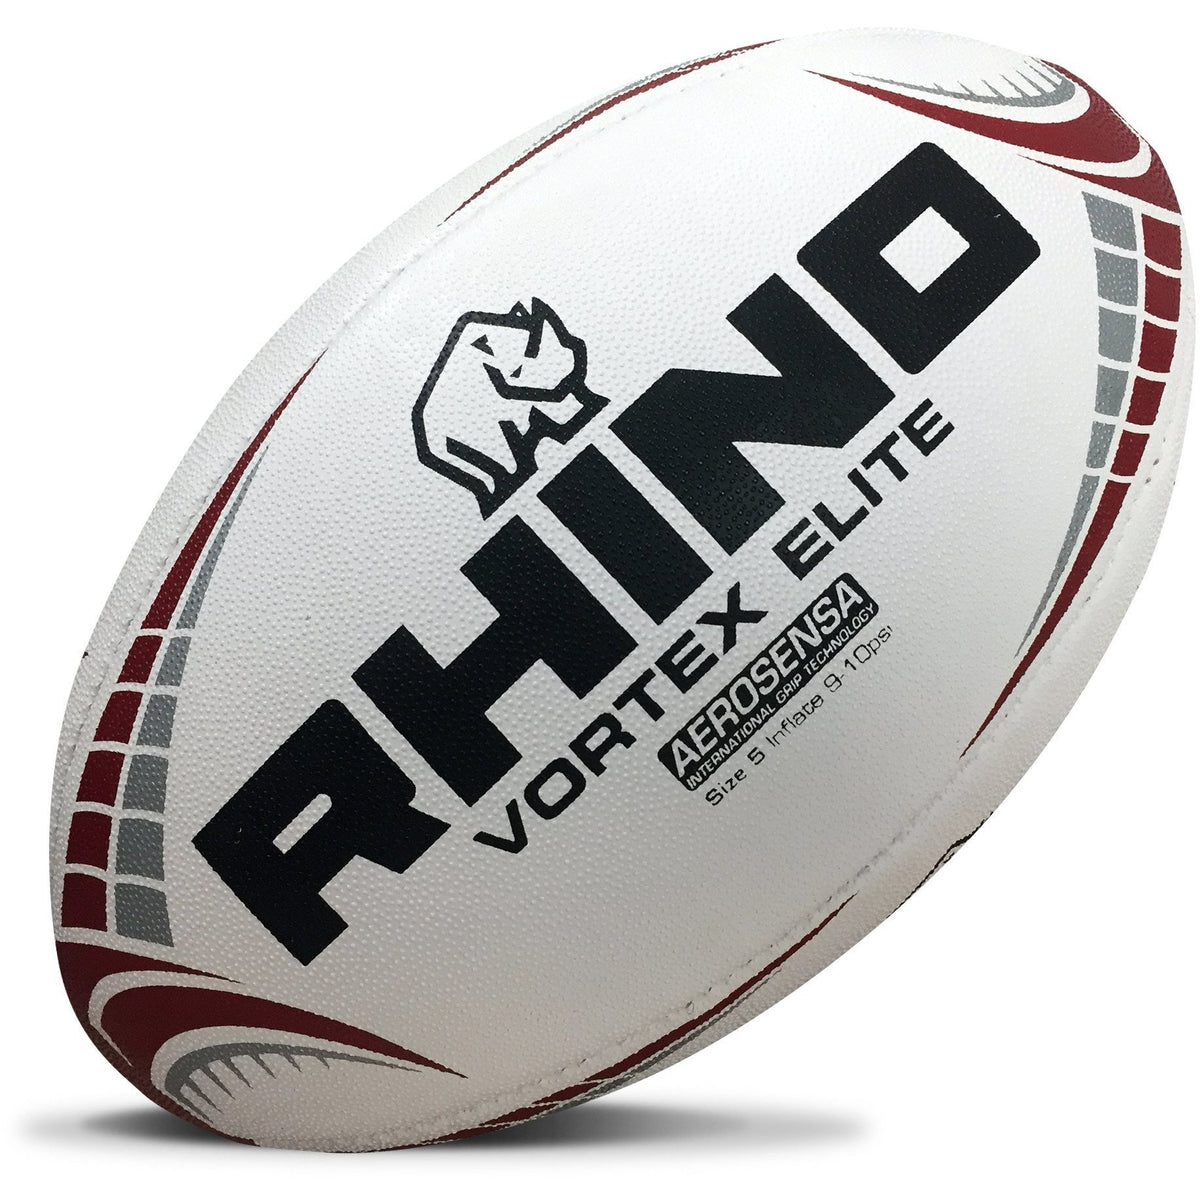 Rhino Vortex Elite Match Rugby Ball - Size 5 - www.therugbyshop.com